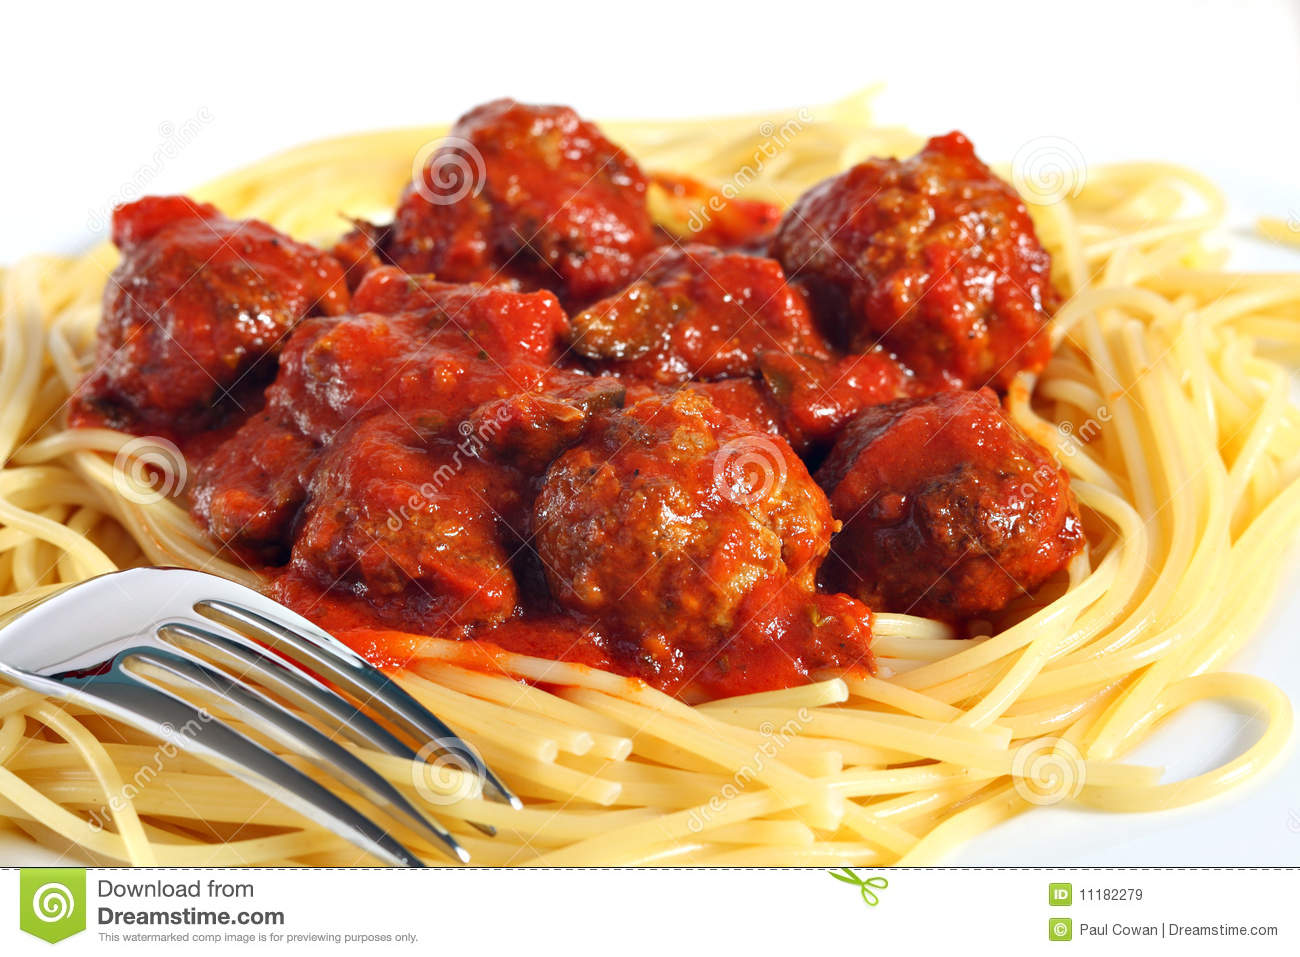 Spaghetti and meatballs stock image. Image of home, food.